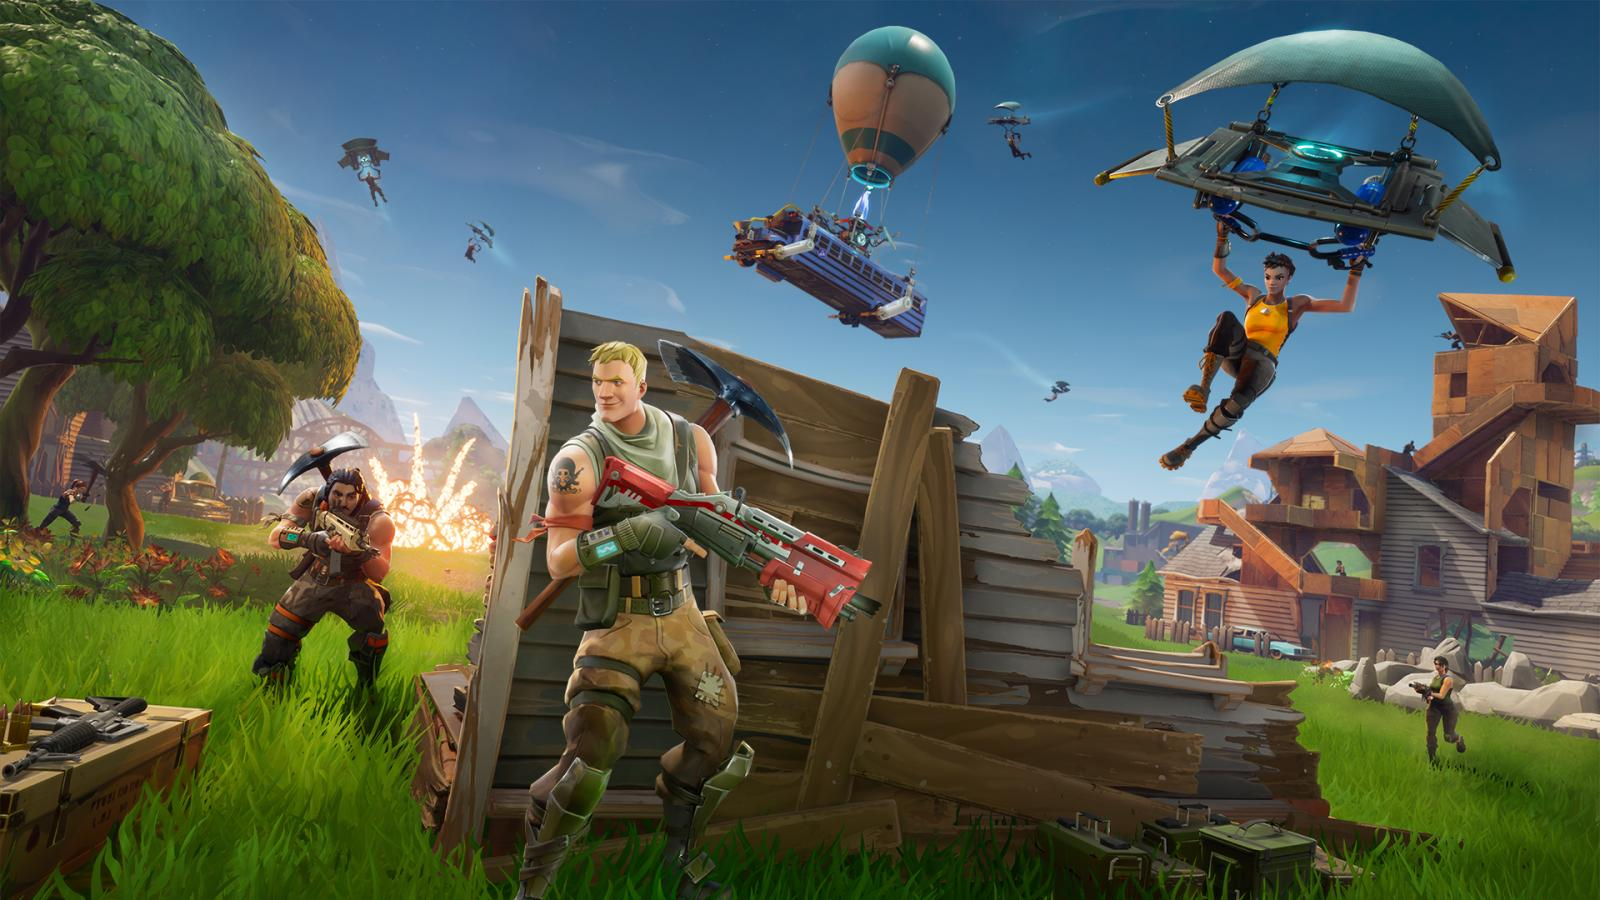 Fortnite: How to Get Free Skins